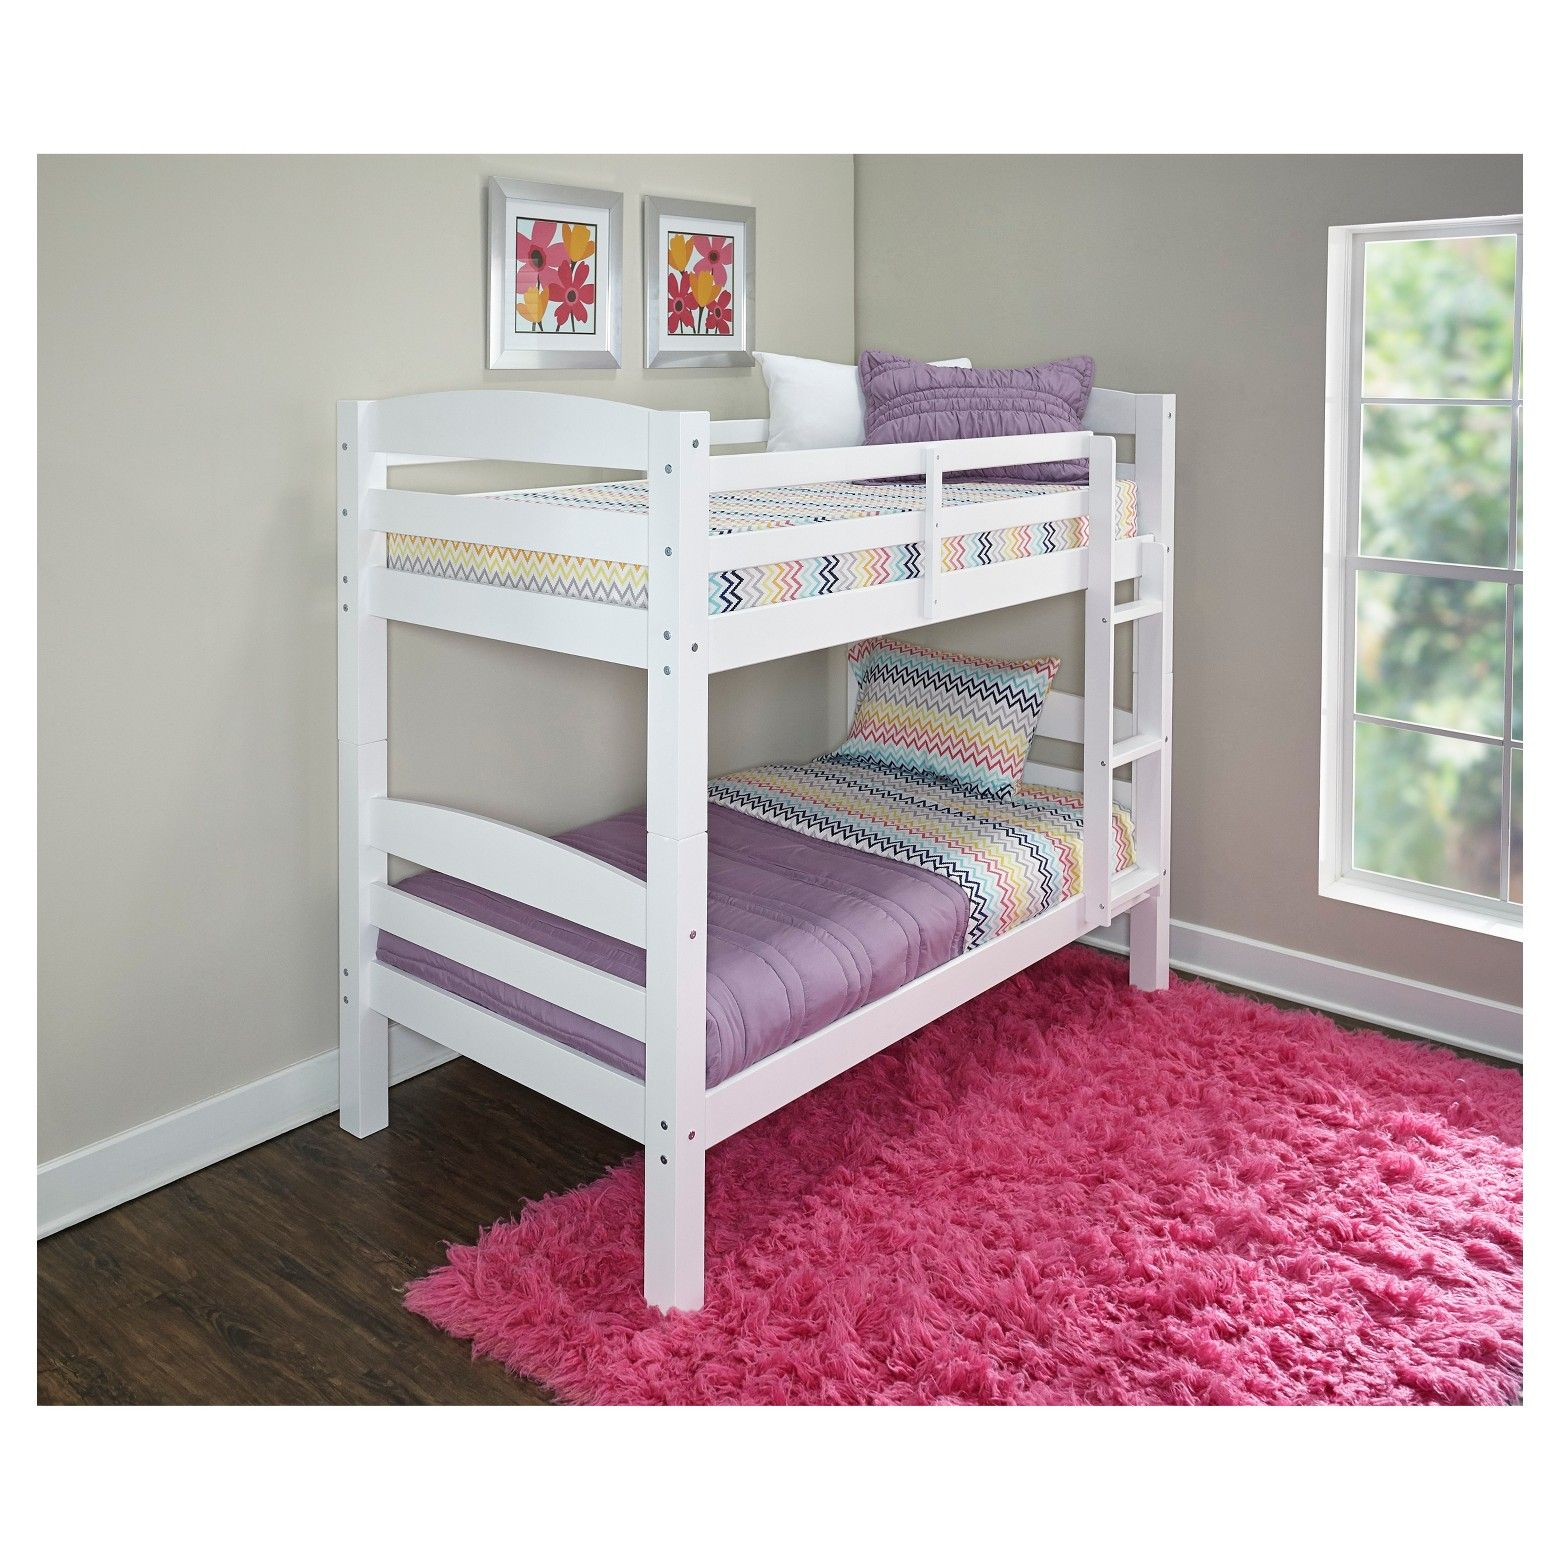 Combining Classic Style With A Sleek Modern Look, The Avery Bunk Bed Is  Made For Todayu0027s Youth. The Bunk Bed Is Made Of Pine Wood And Offers Extra  Room For ...